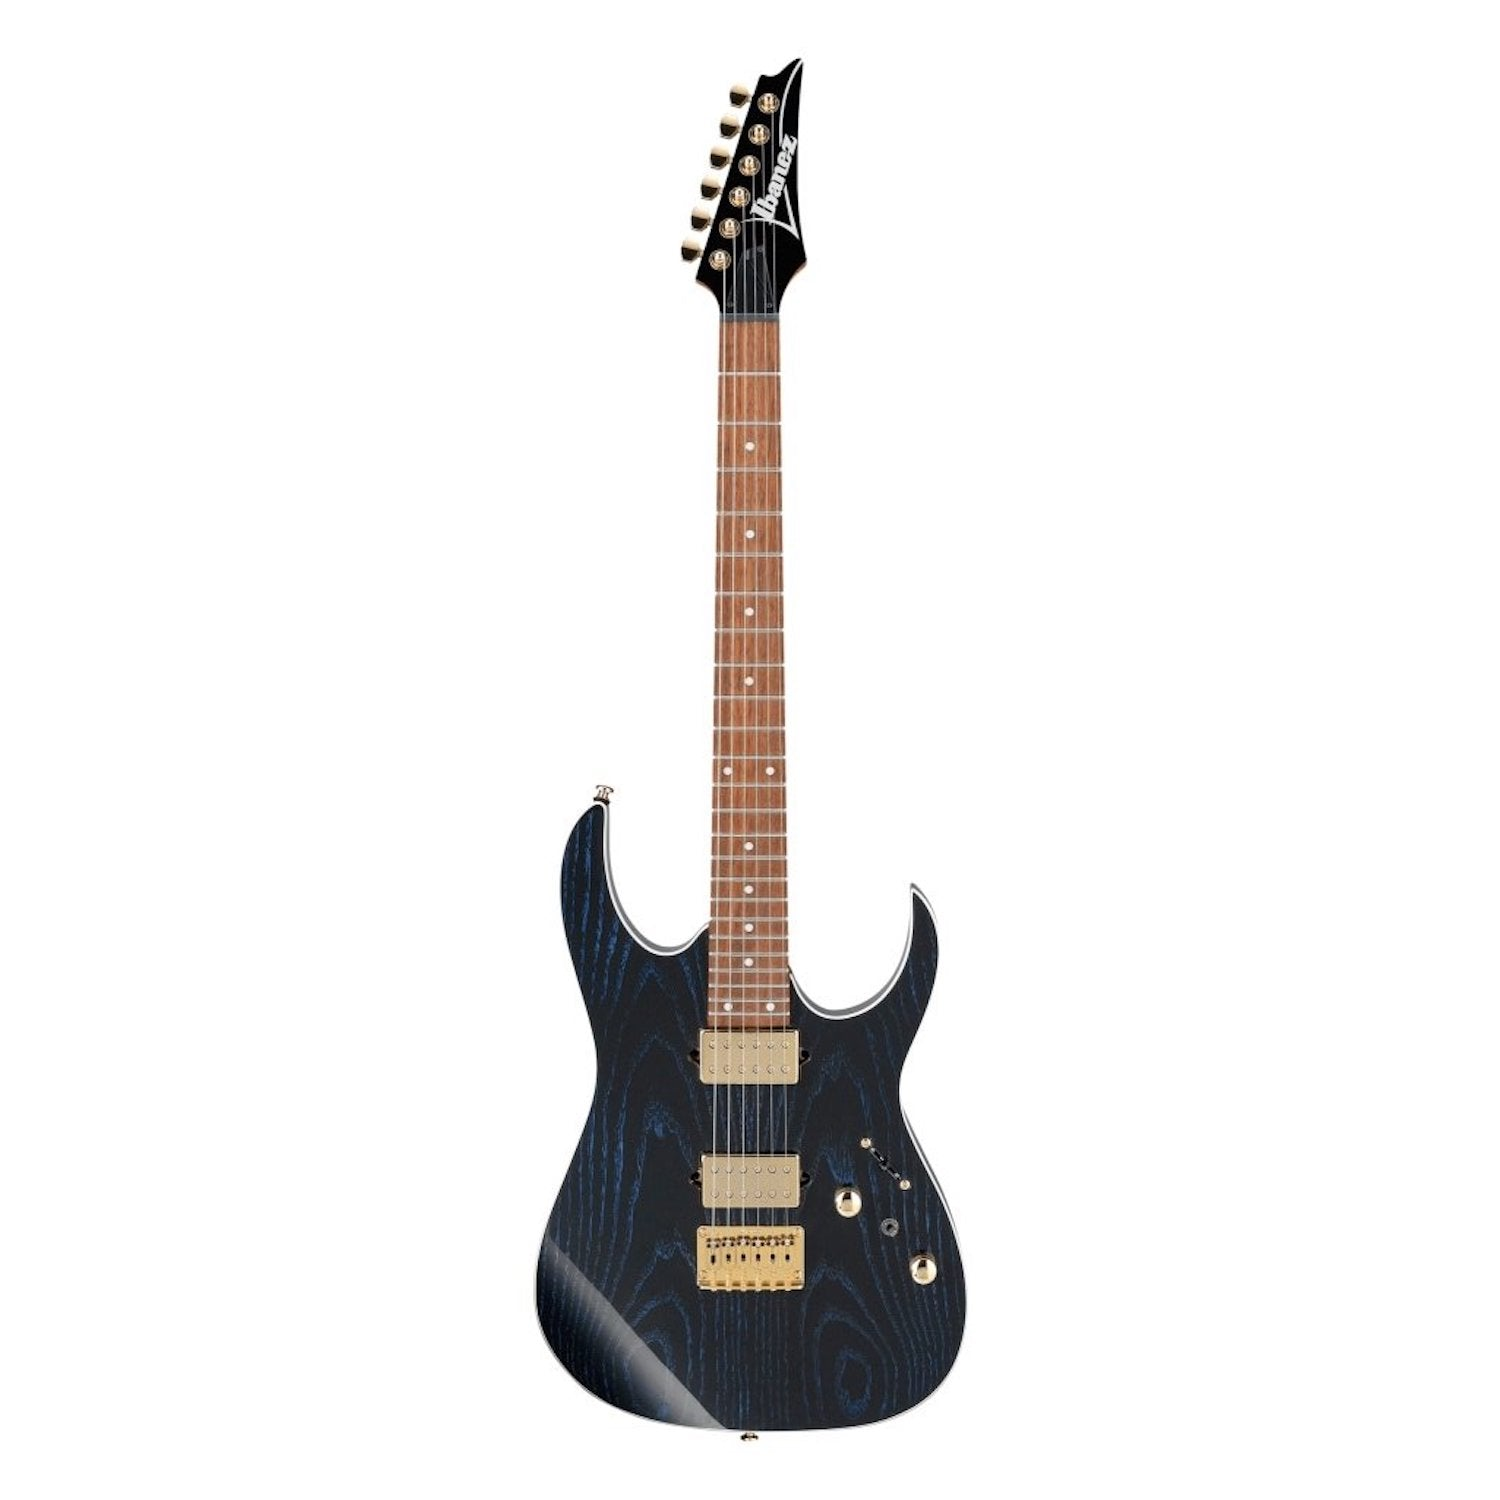 Ibanez RG421HPAH BWB Electric Guitar - in Blue Wave Black